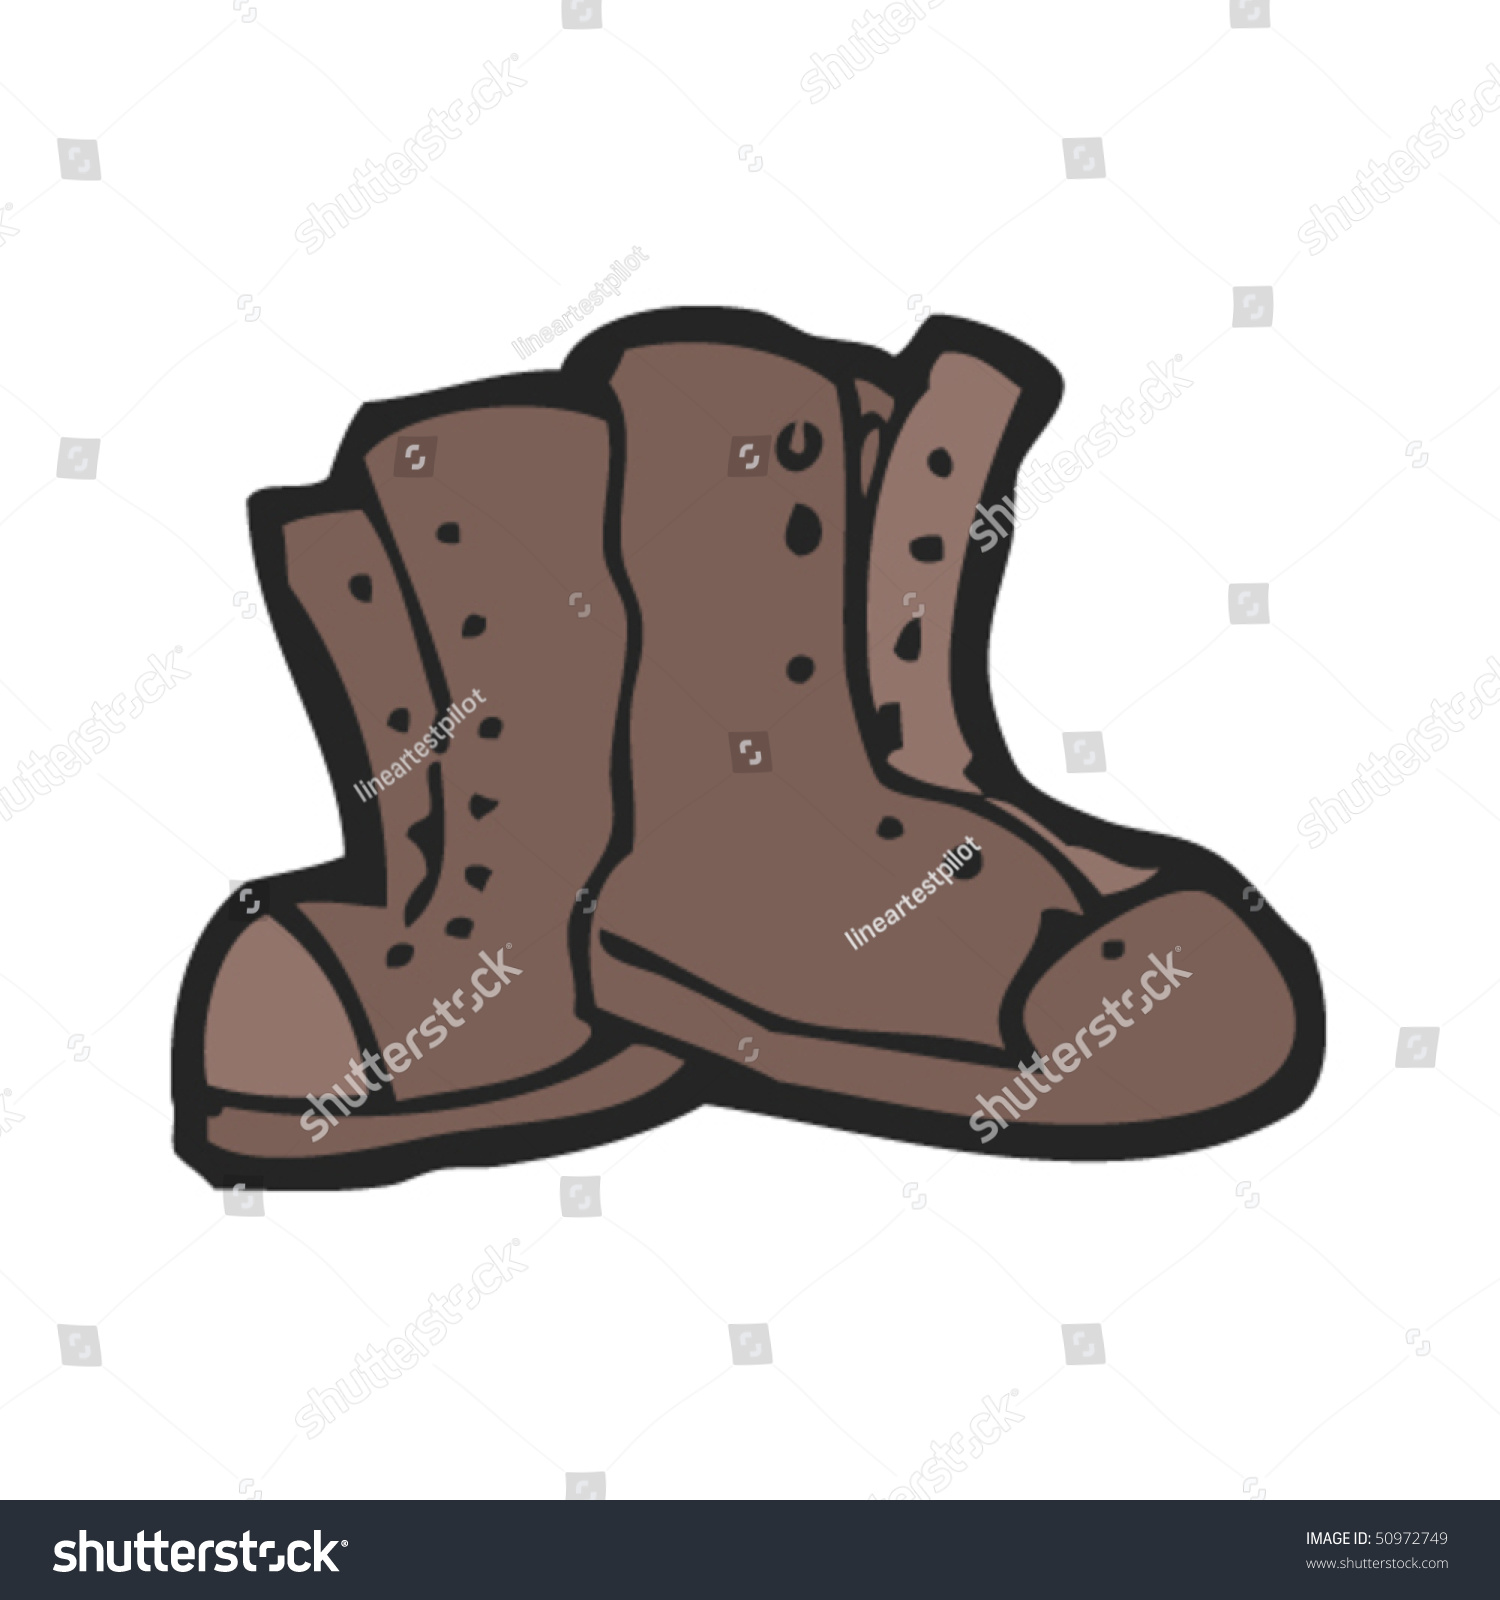 Quirky Drawing Old Boots Stock Vector 50972749 - Shutterstock